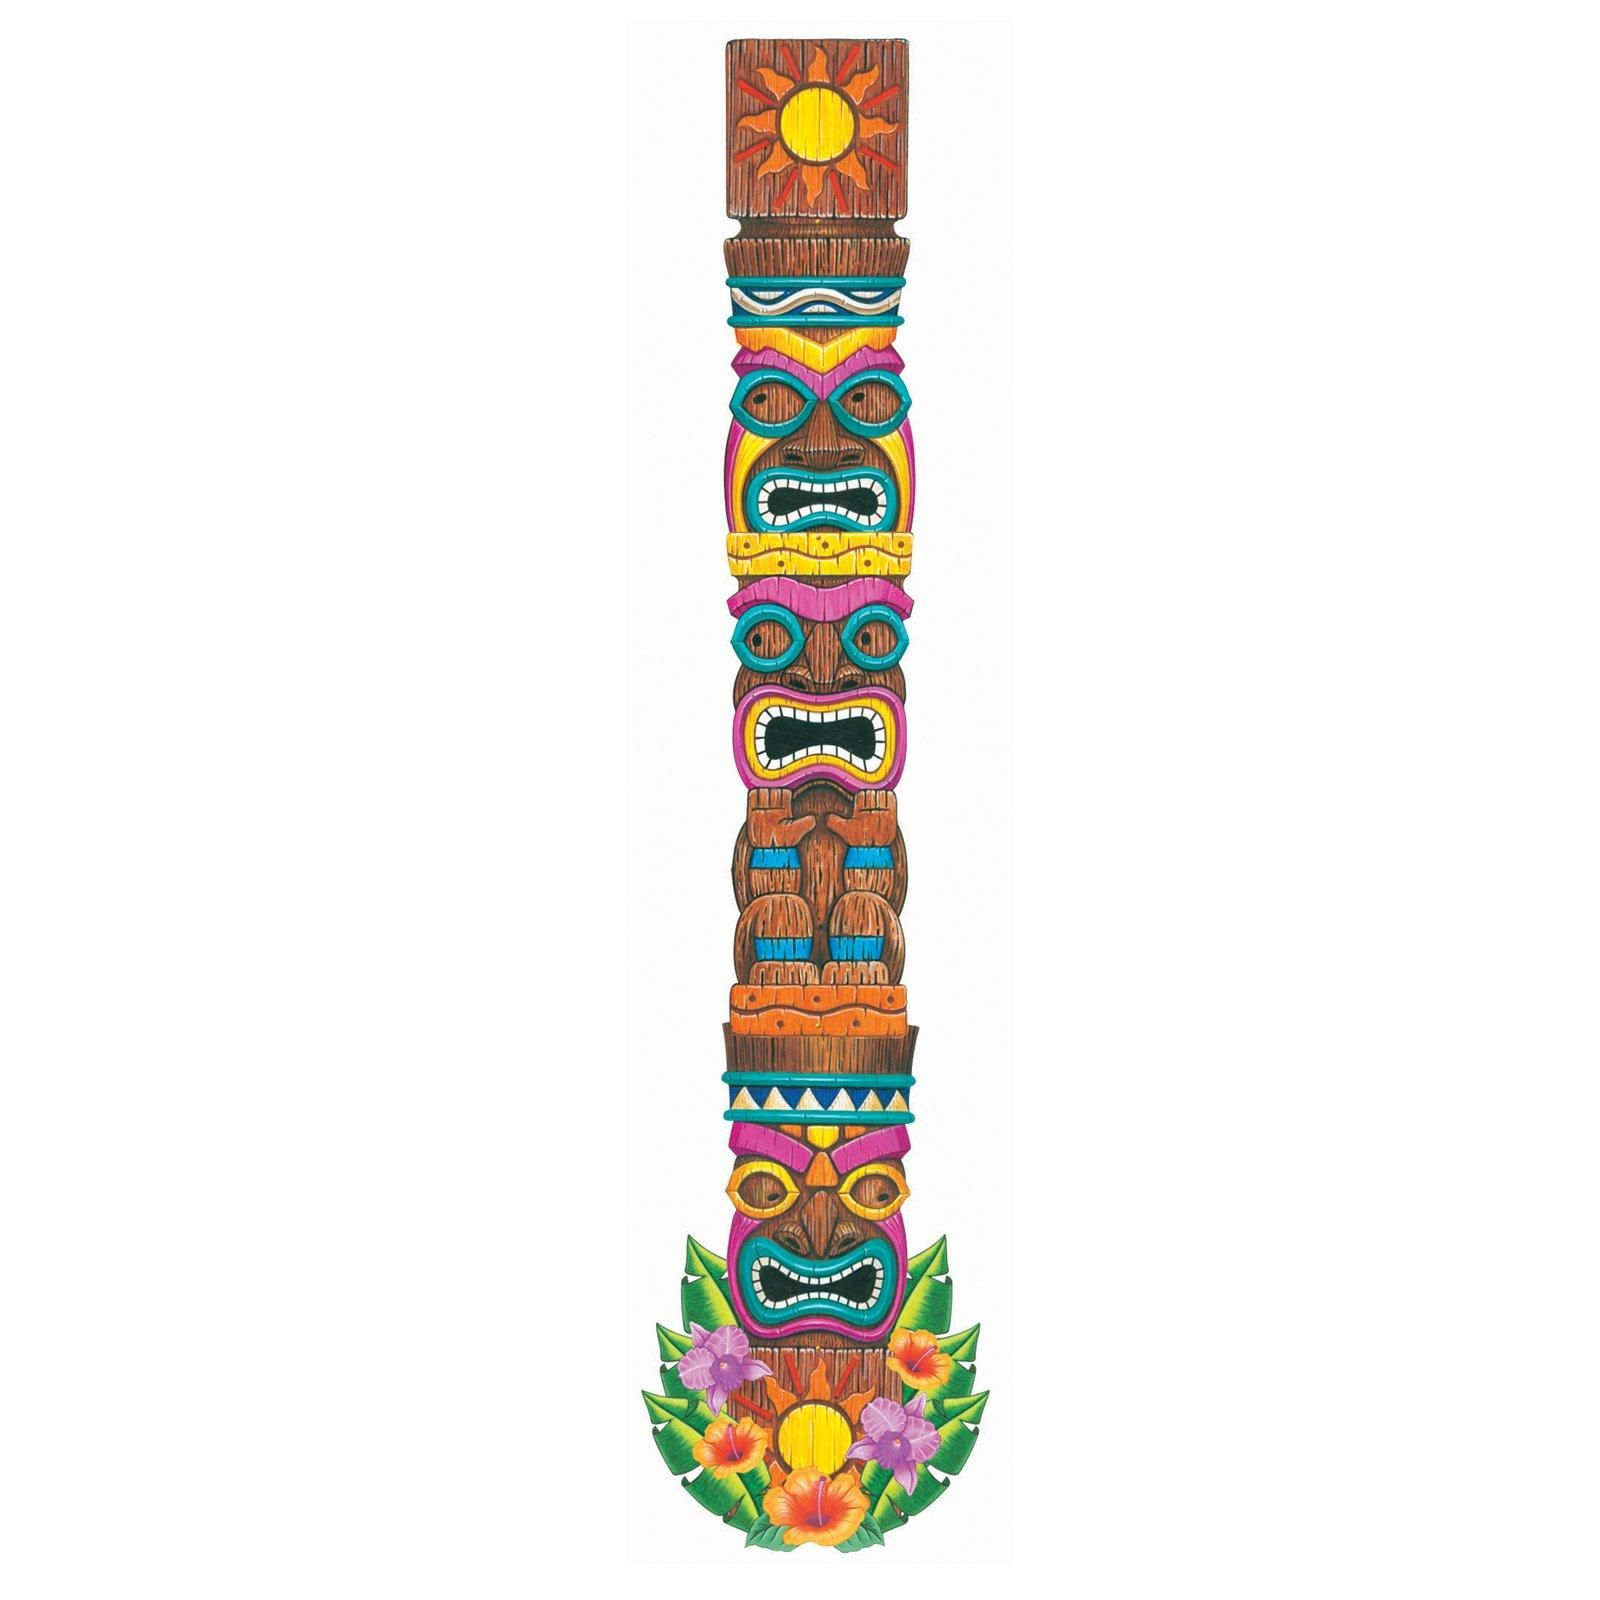 Tiki totem pole clipart vector download 30 Awesome tiki totem pole clipart | Luau | Tiki totem, Luau ... vector download